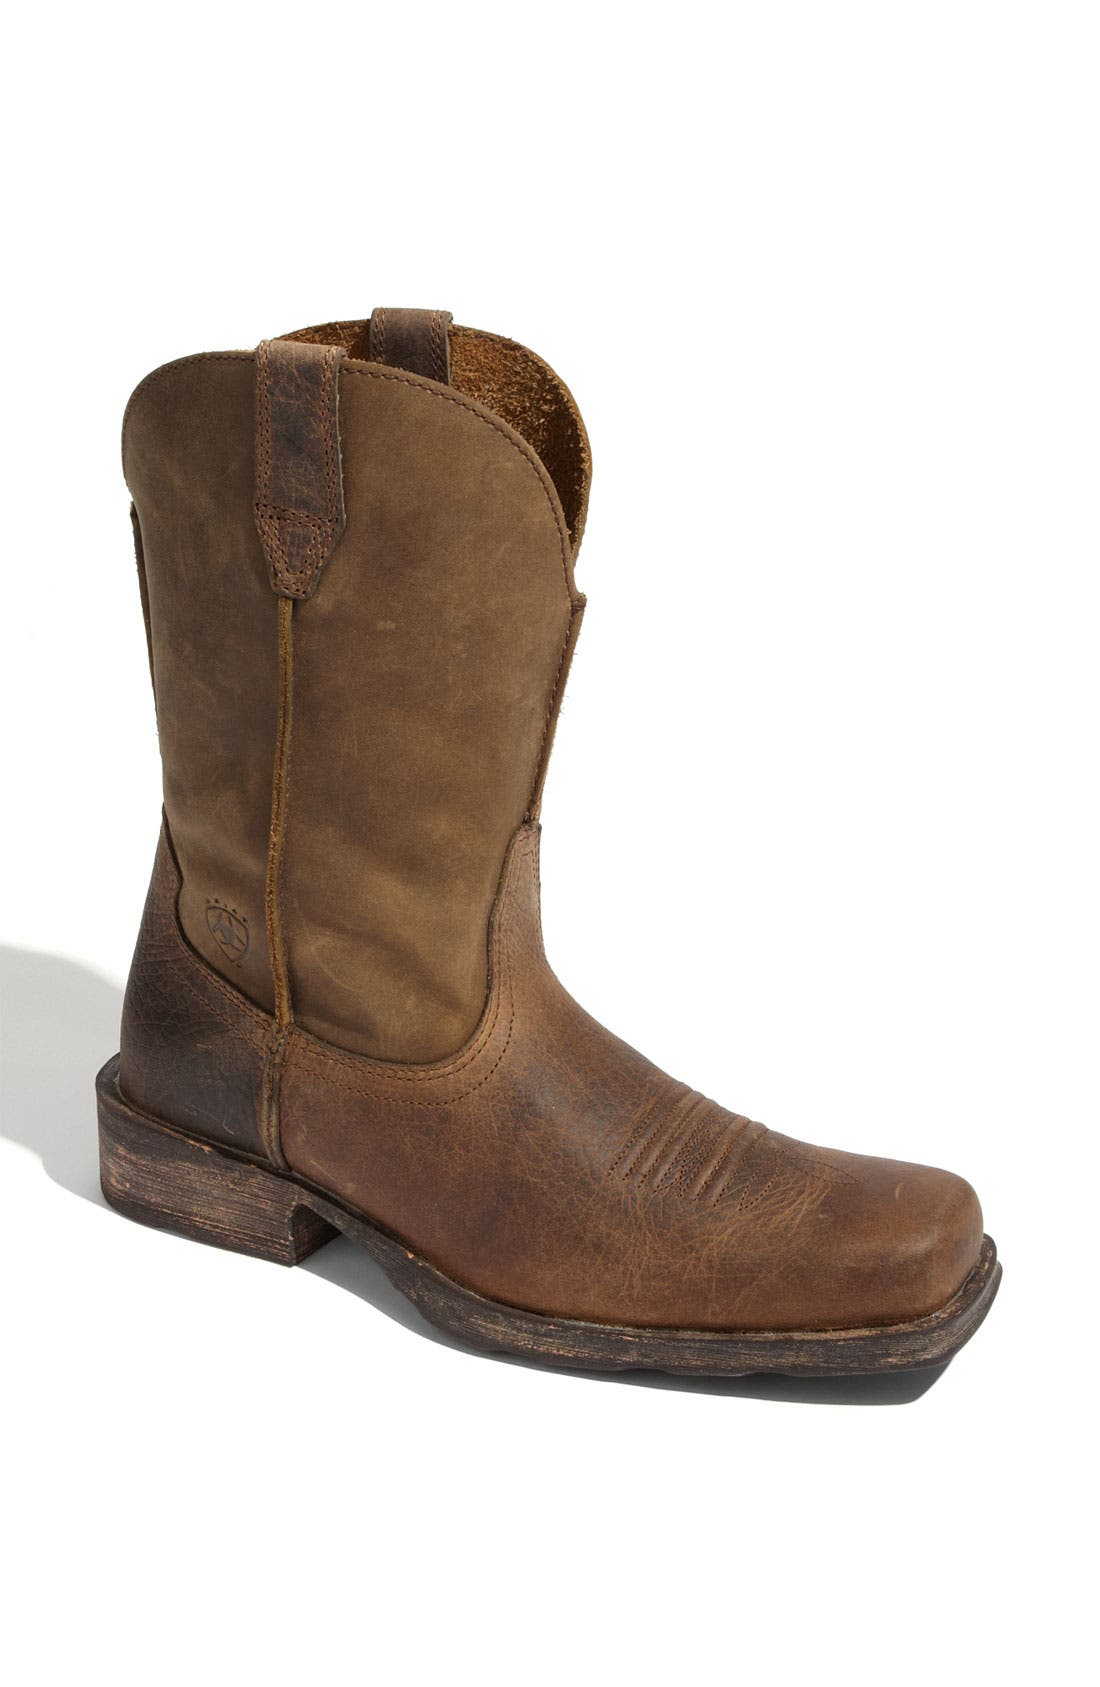 Alternate Image 1 Selected - Ariat Rambler Boot (Men)